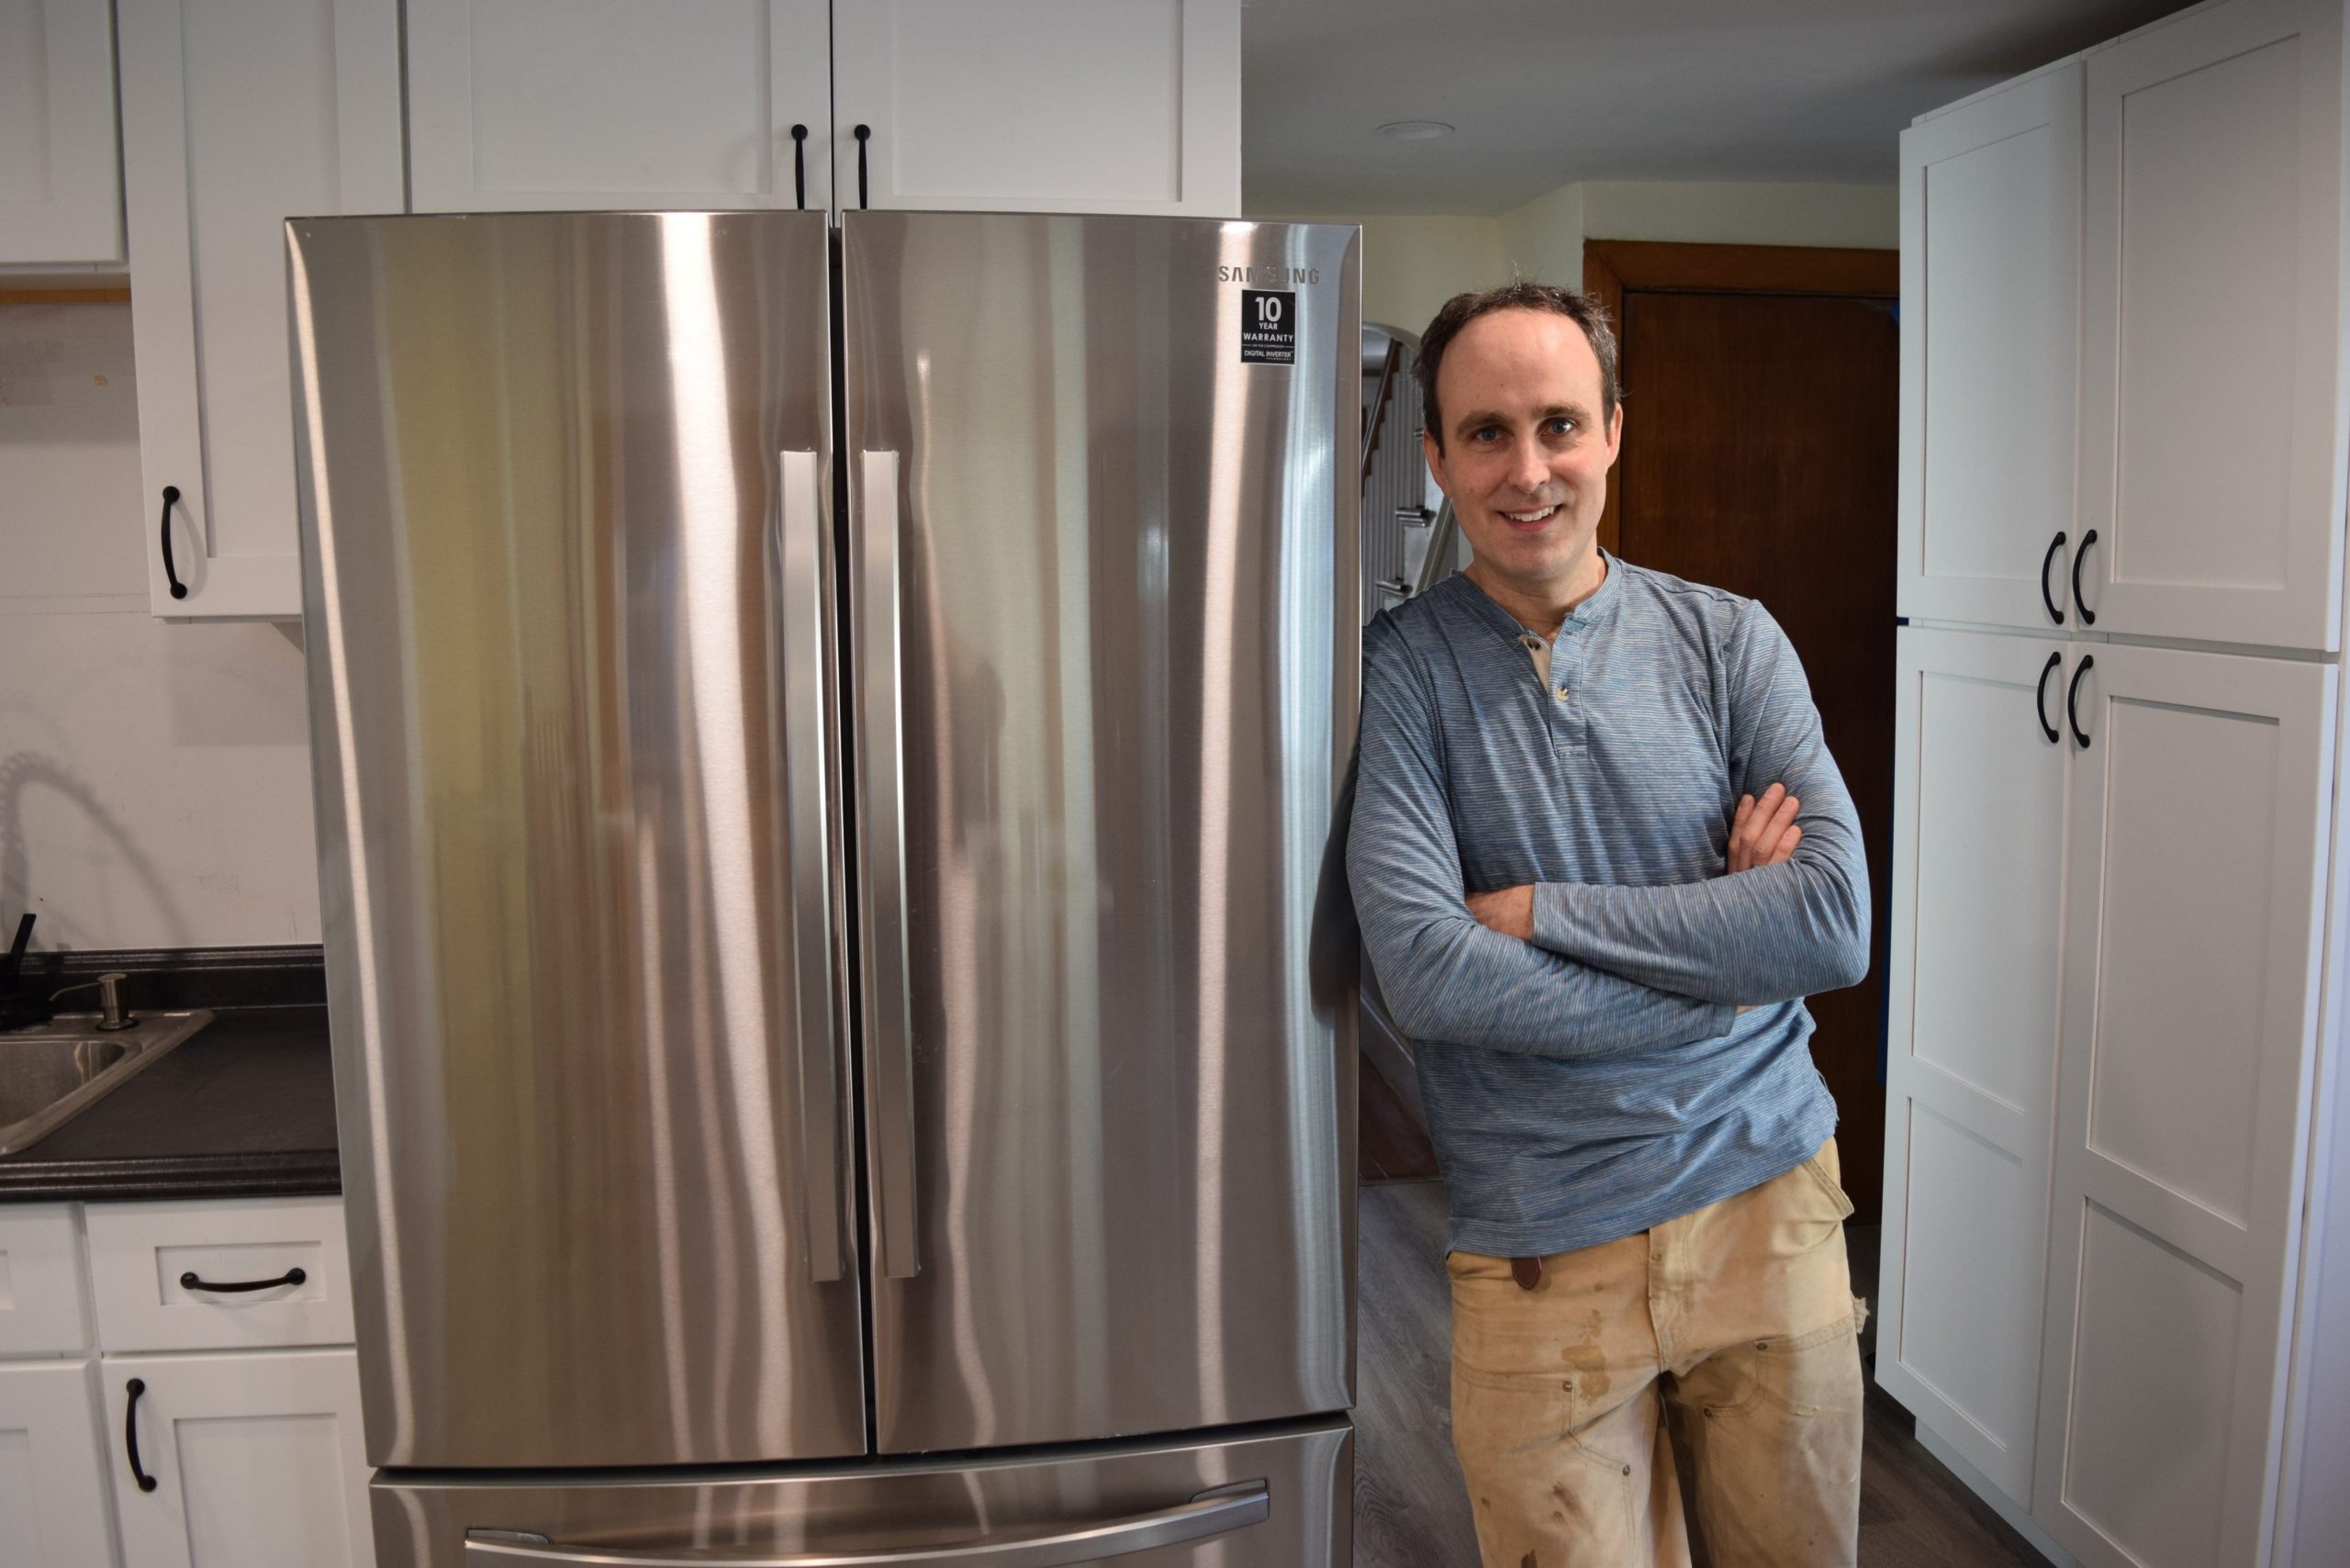 I tried to buy a climate-friendly refrigerator from GE. What I got was a carbon bomb.